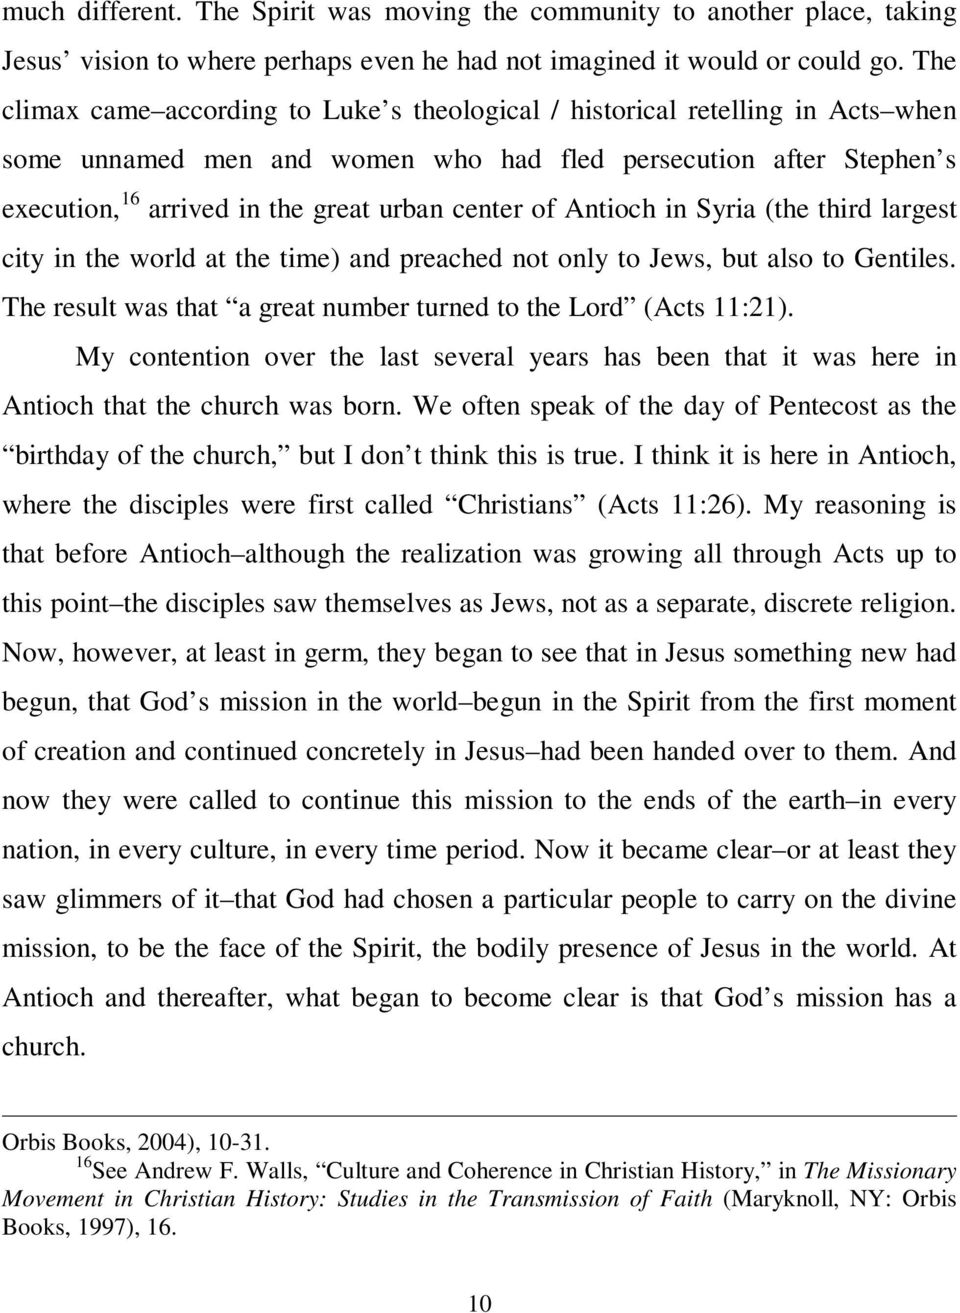 of Antioch in Syria (the third largest city in the world at the time) and preached not only to Jews, but also to Gentiles. The result was that a great number turned to the Lord (Acts 11:21).